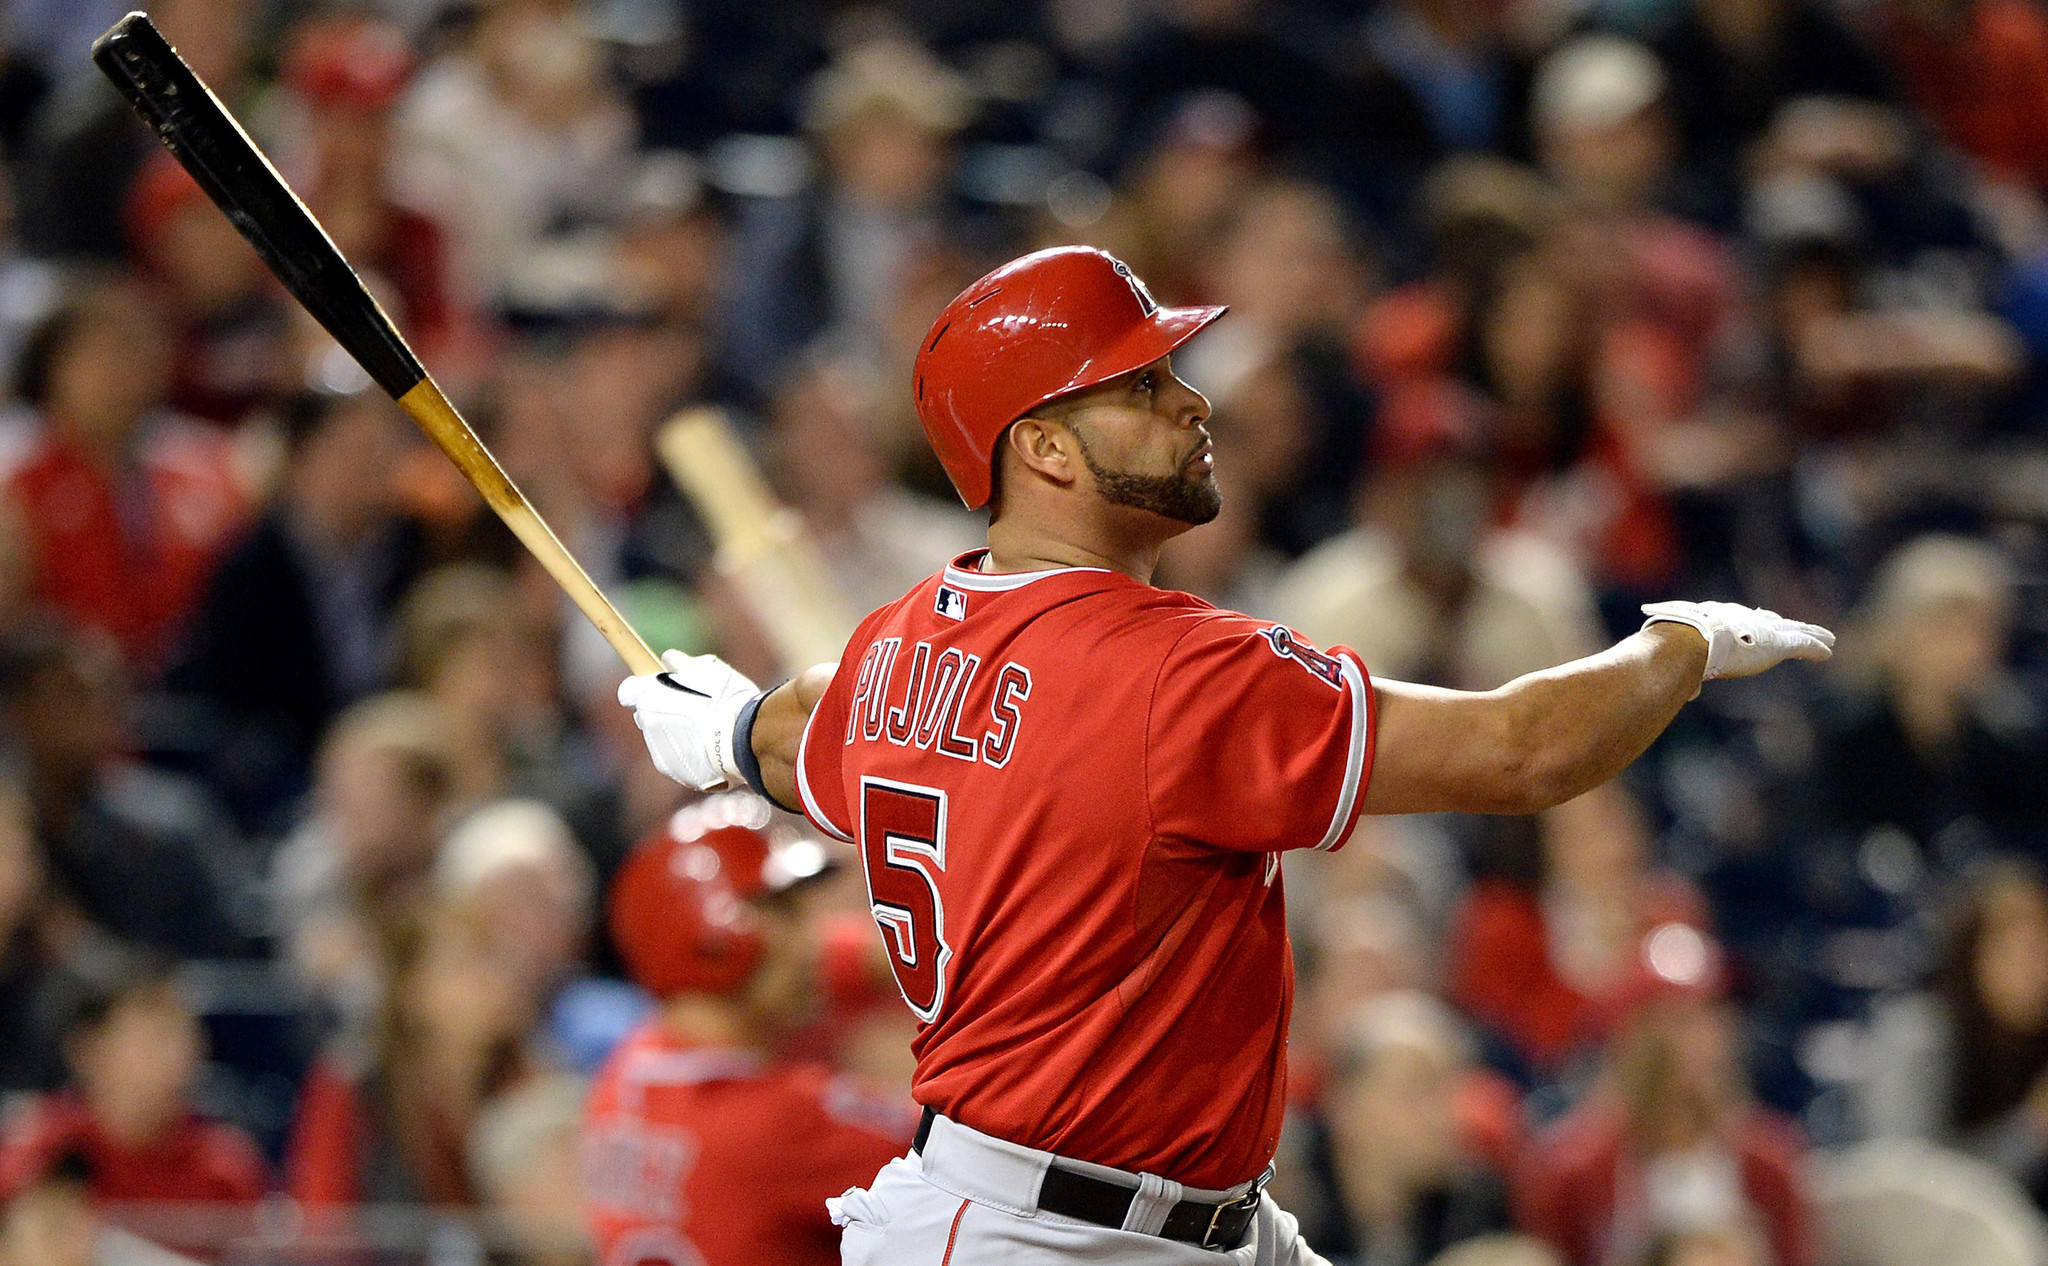 Angels slugger Albert Pujols hits his 500th career home run in the fifth inning of Tuesday's game against the Washington Nationals. Pujols hit his 499th career blast in the first inning.